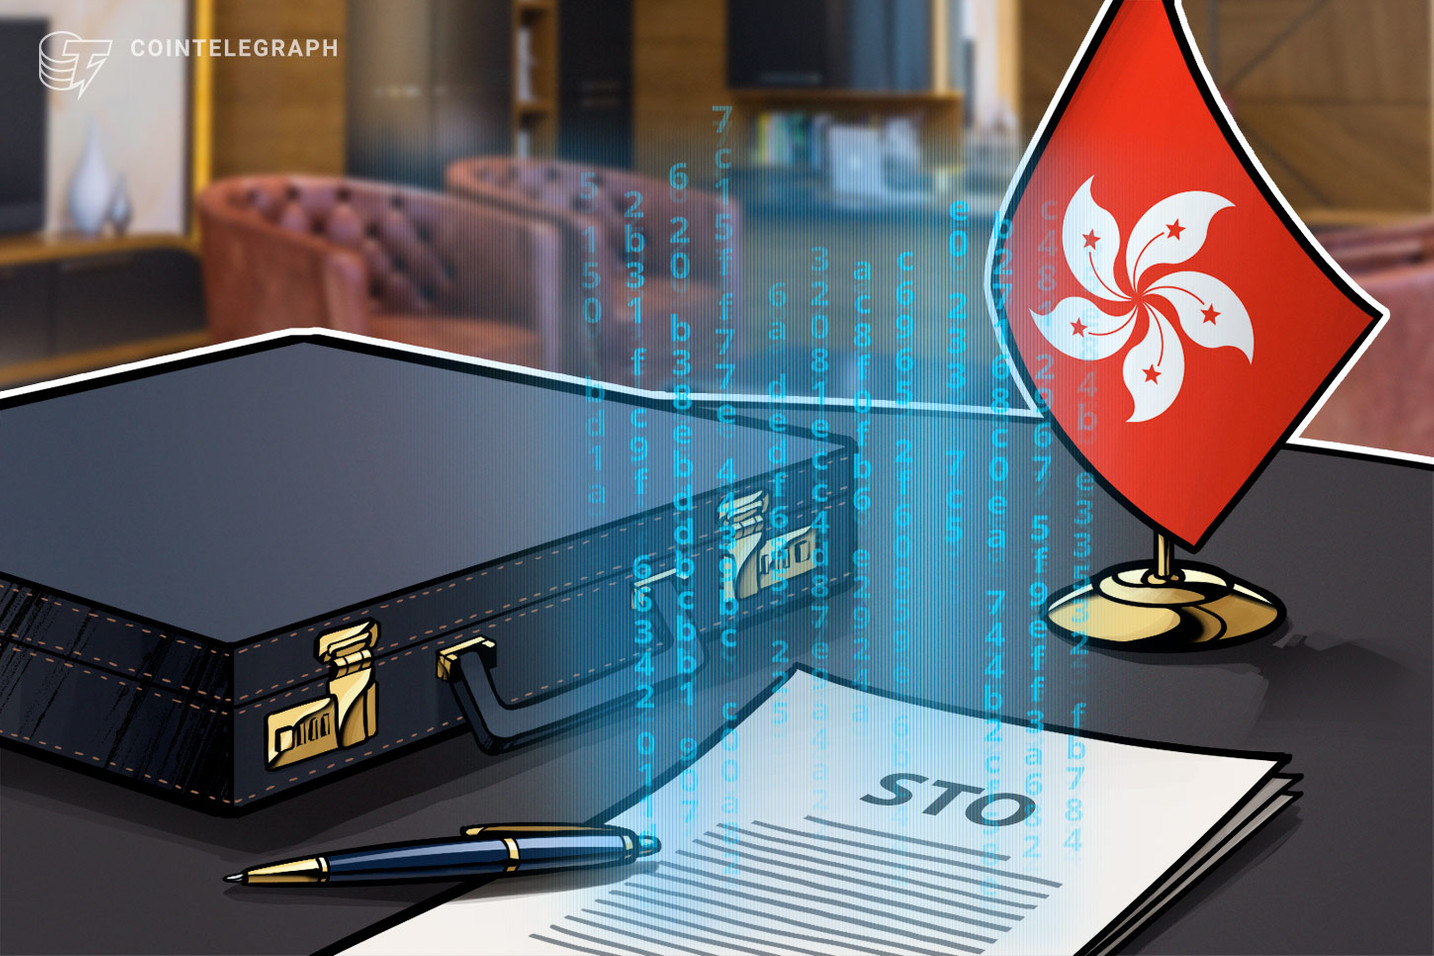 Hong Kong's Securities Regulator Issues Detailed Guidance for Security Token Offerings